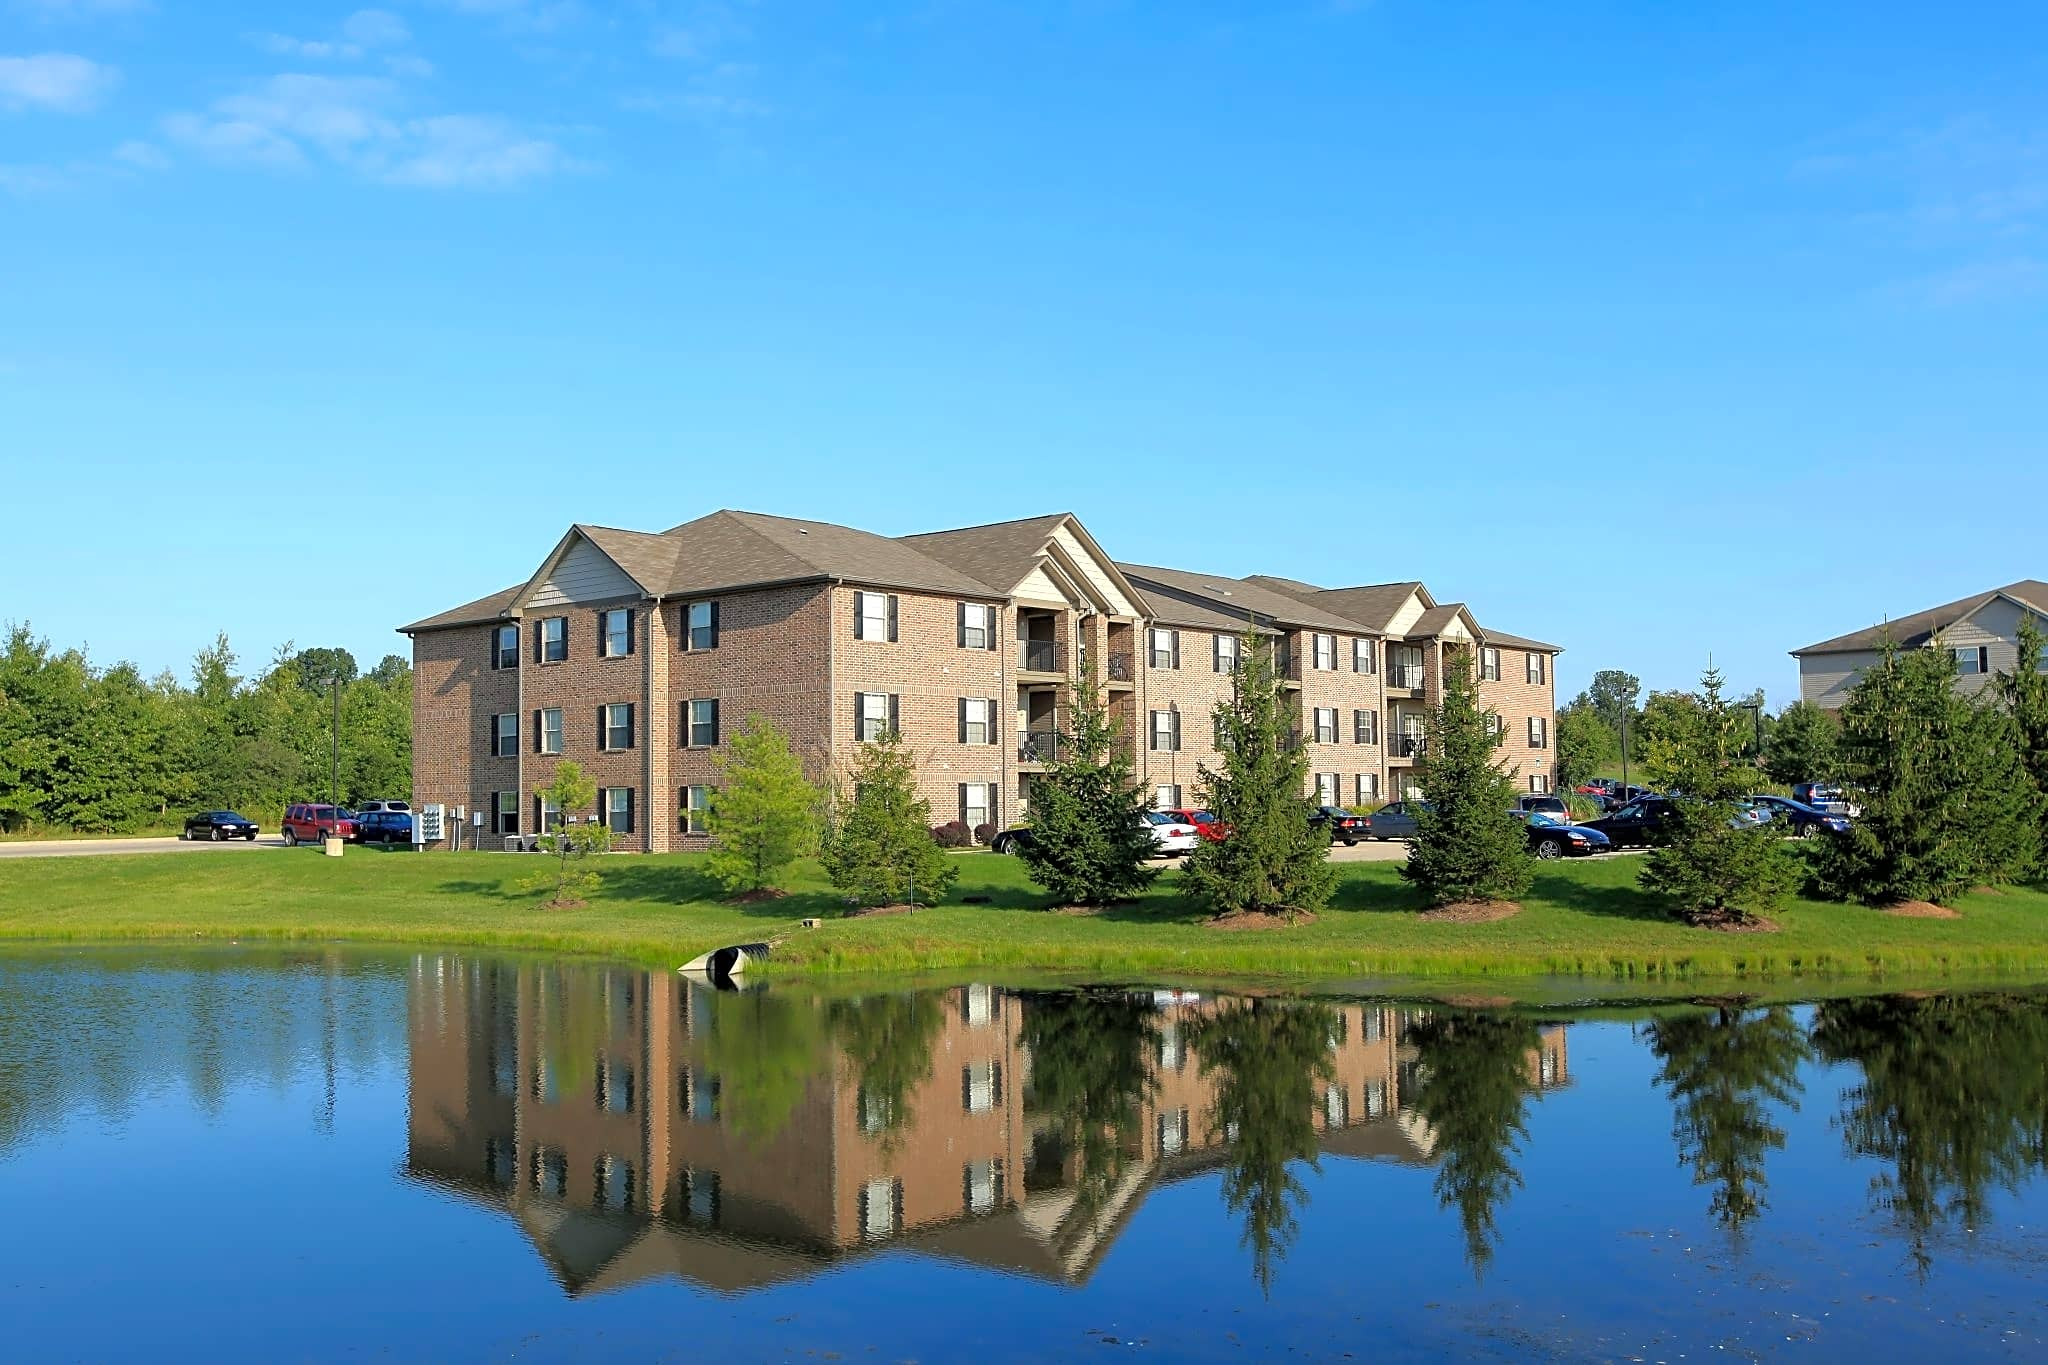 Apartments Near Tricoci University of Beauty Culture-Lafayette Village West for Tricoci University of Beauty Culture-Lafayette Students in Lafayette, IN